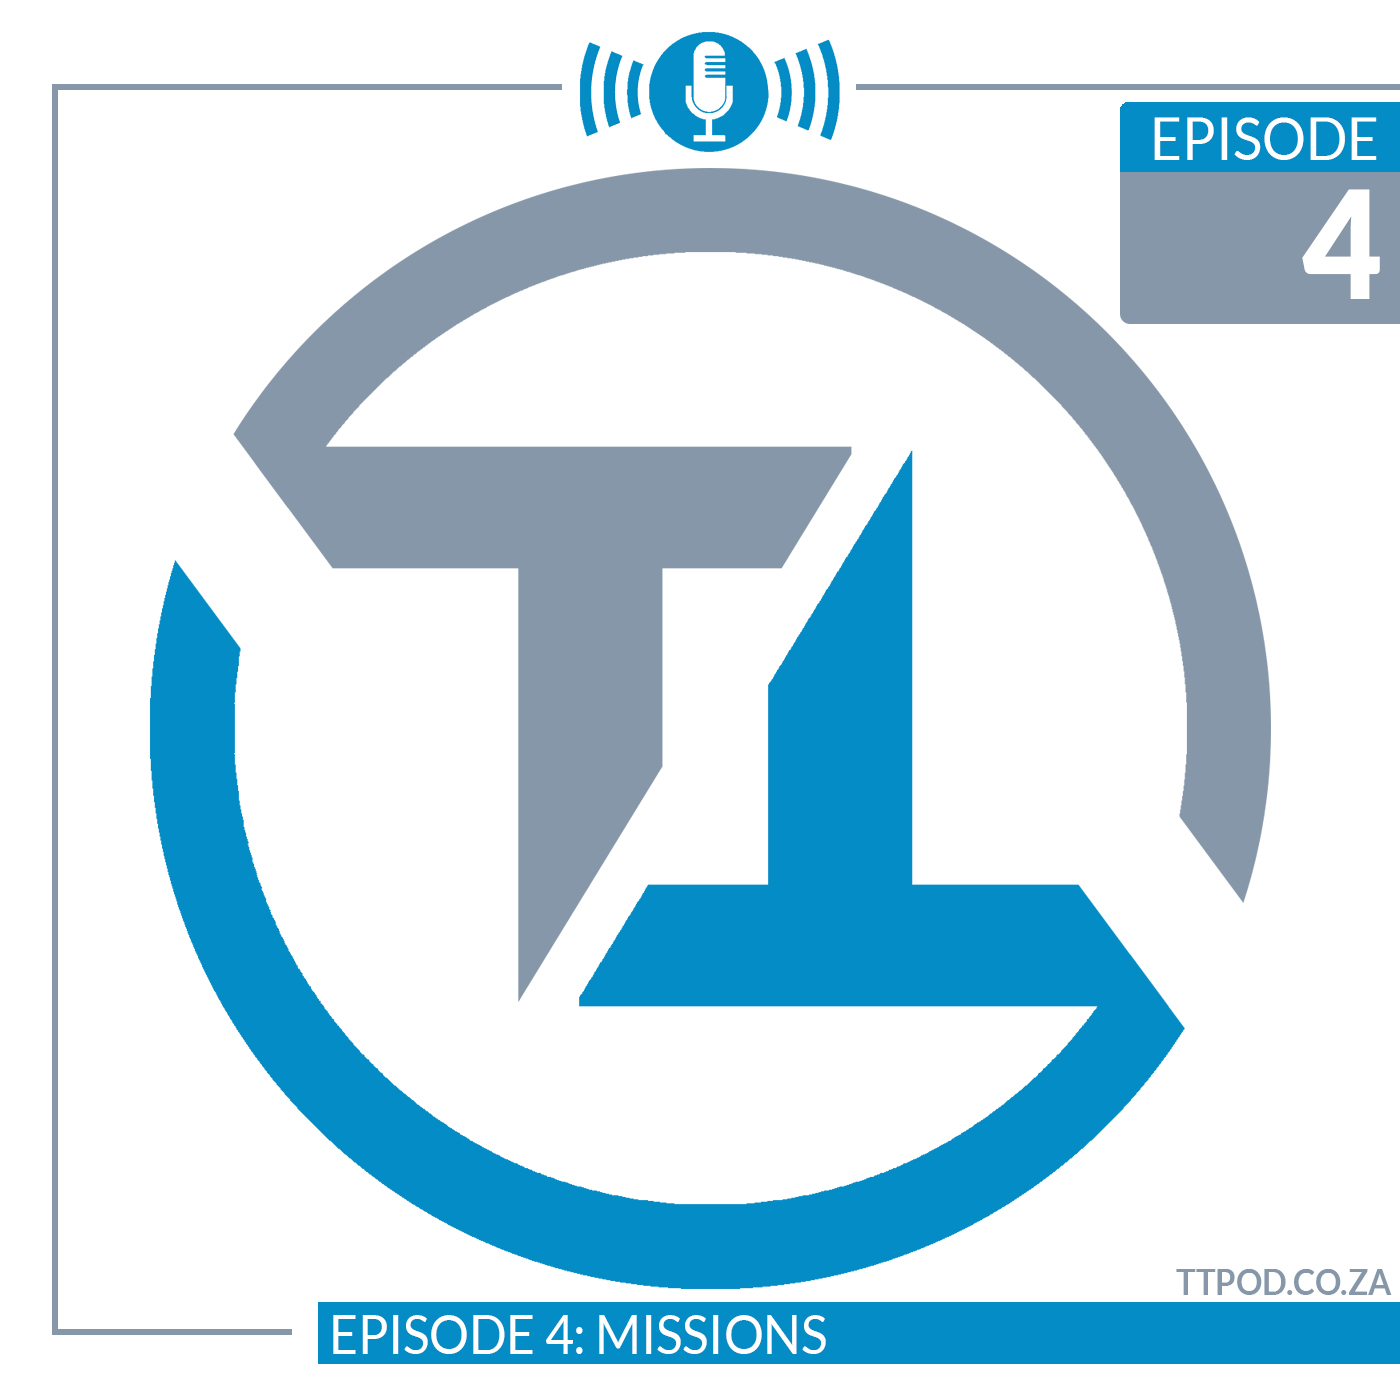 Episode 4: Missions